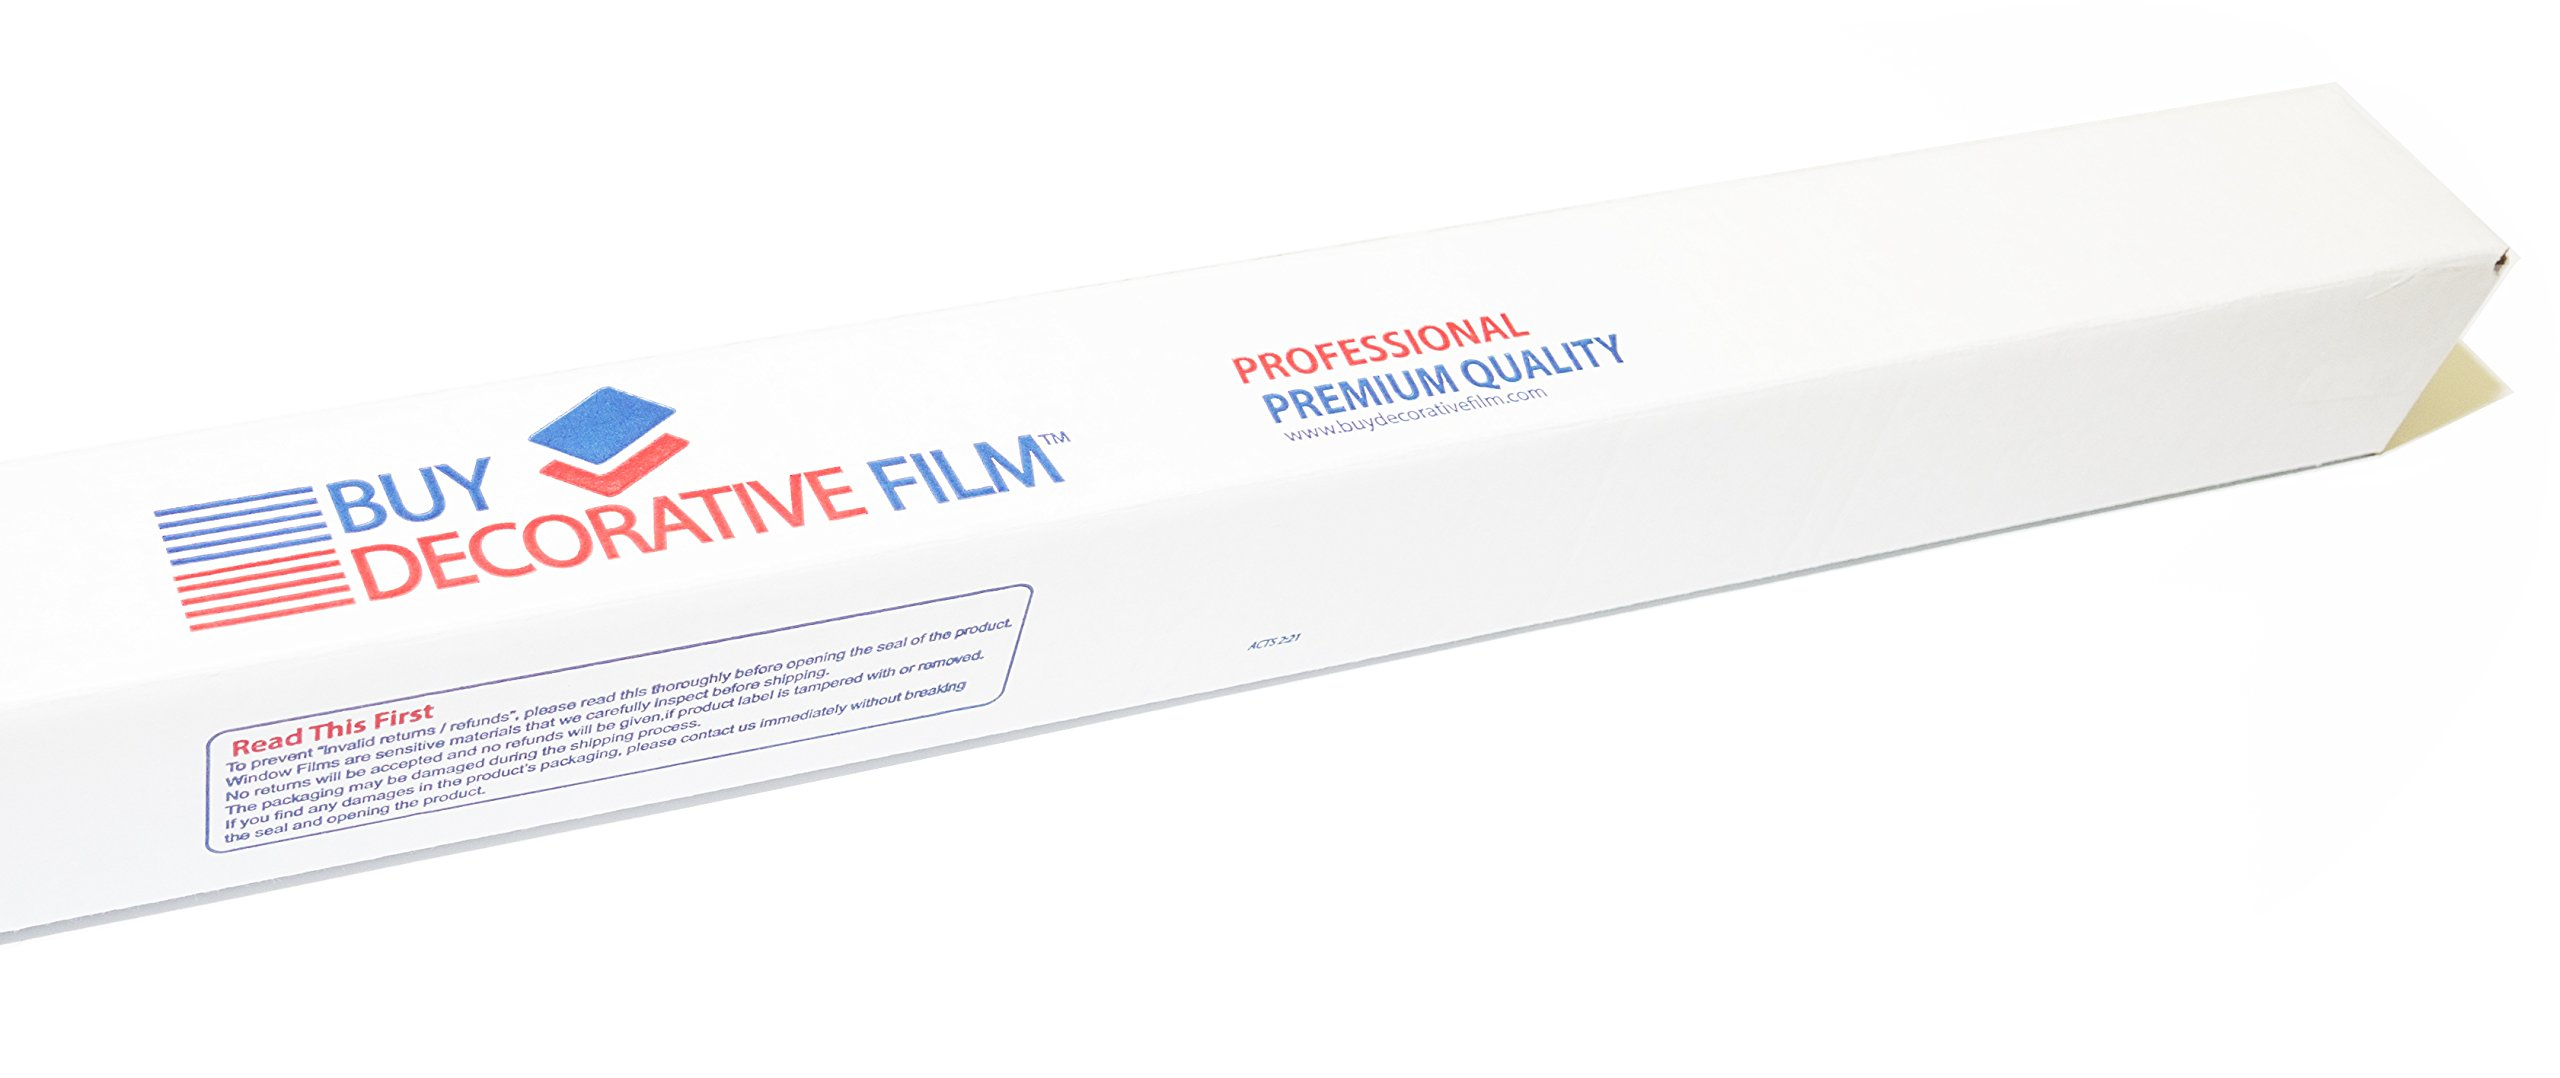 BDF EXS35 EXTERIOR Window Film High Heat Rejection Silver 35 (Medium) - 36in X 50ft by Buydecorativefilm (Image #8)